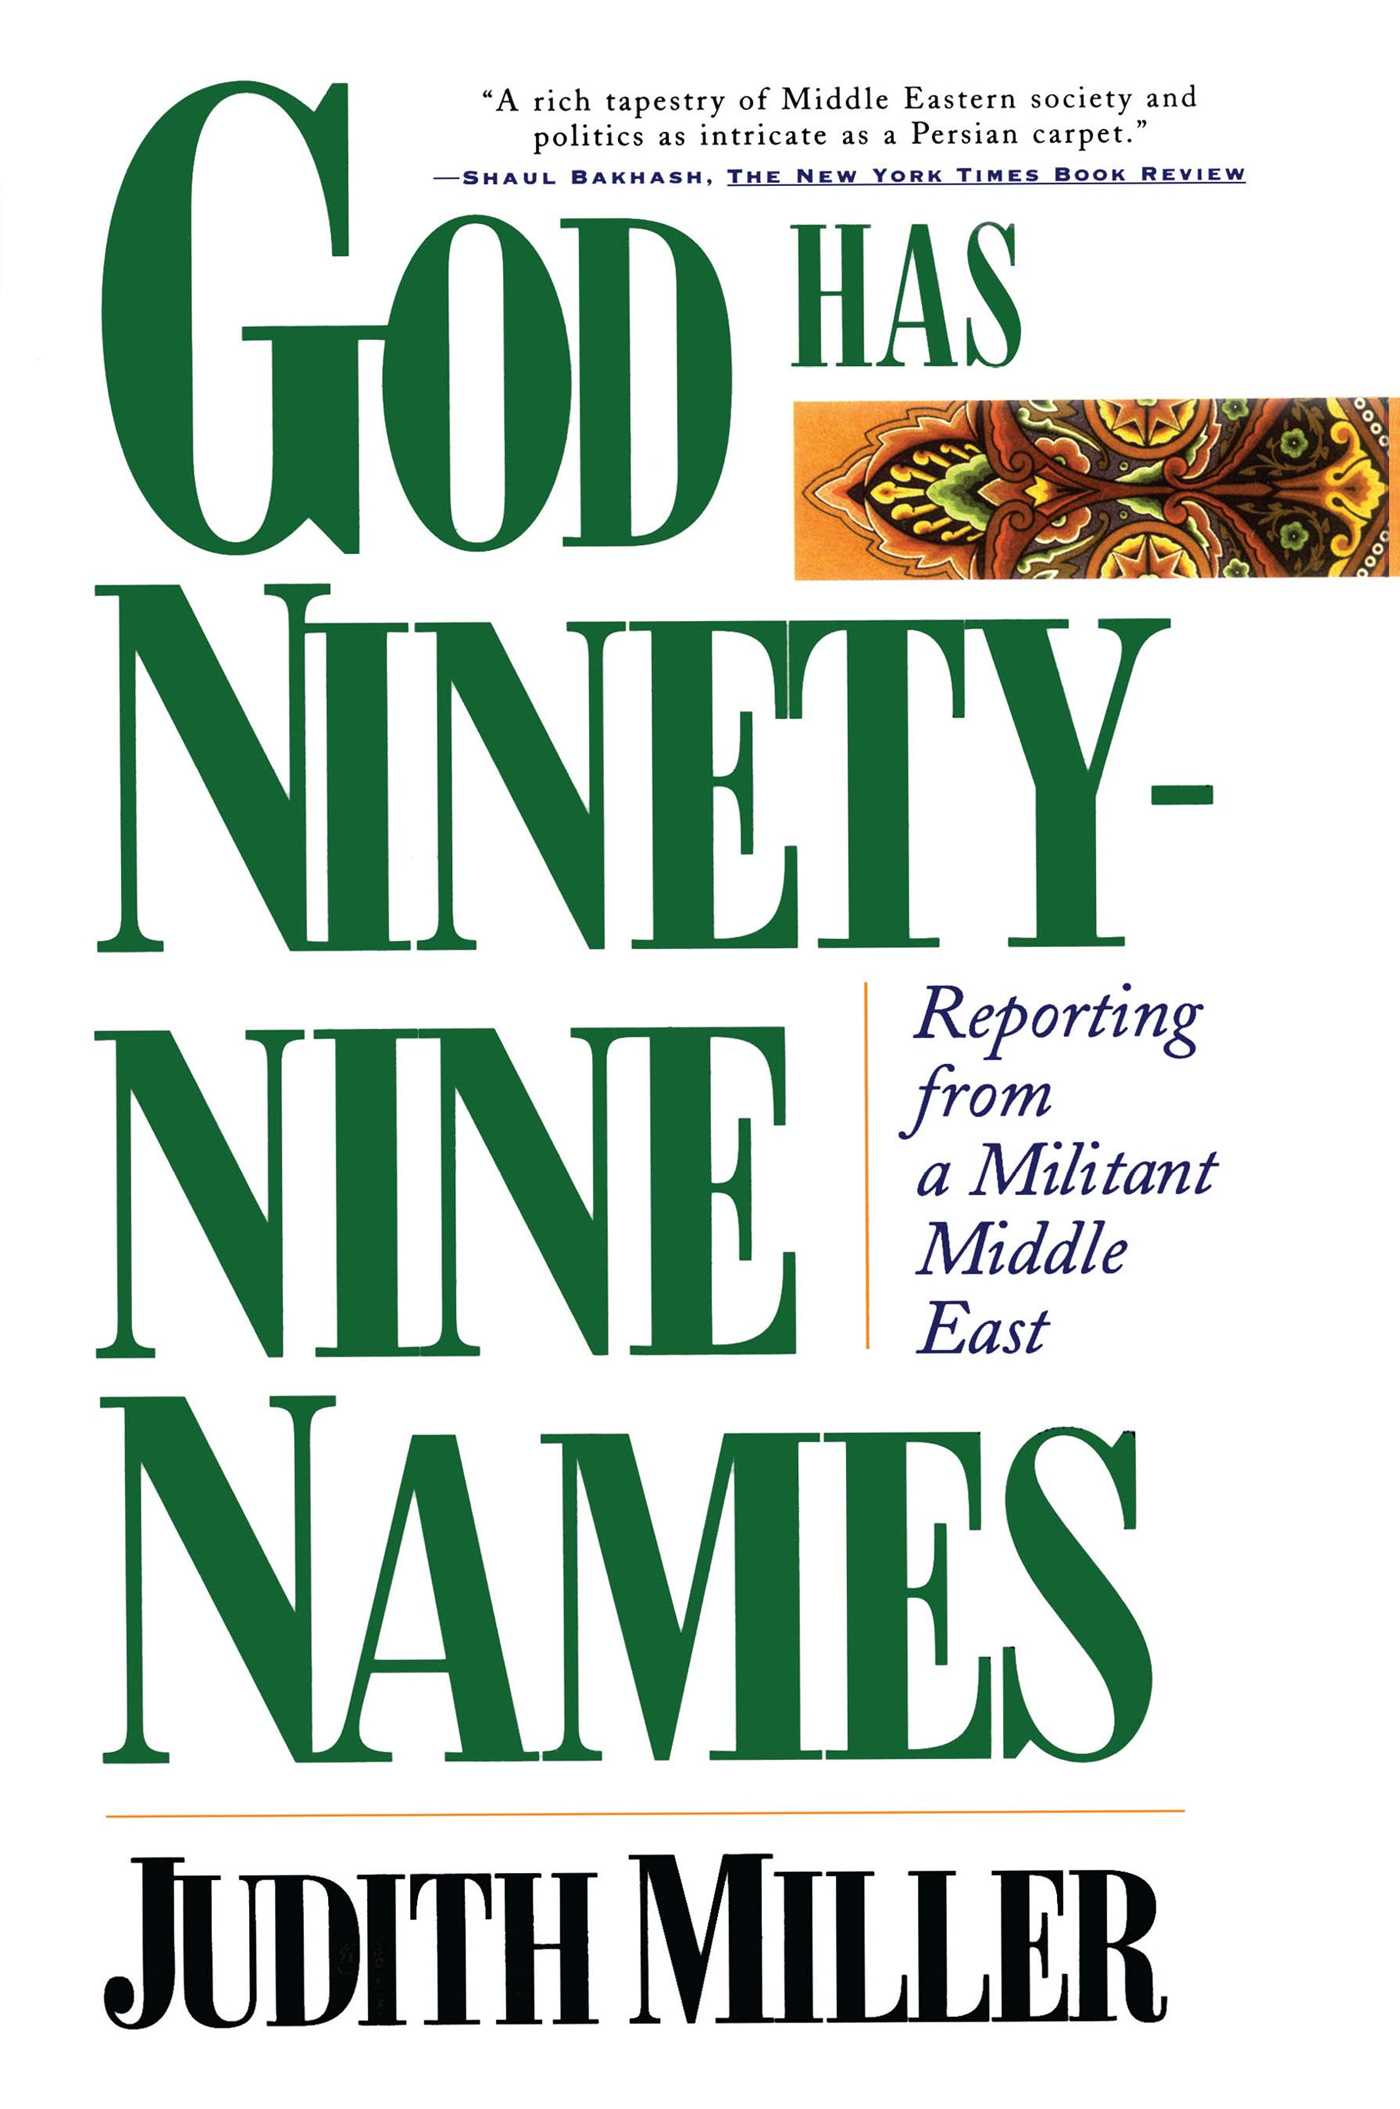 God has ninety nine names 9781439129418 hr